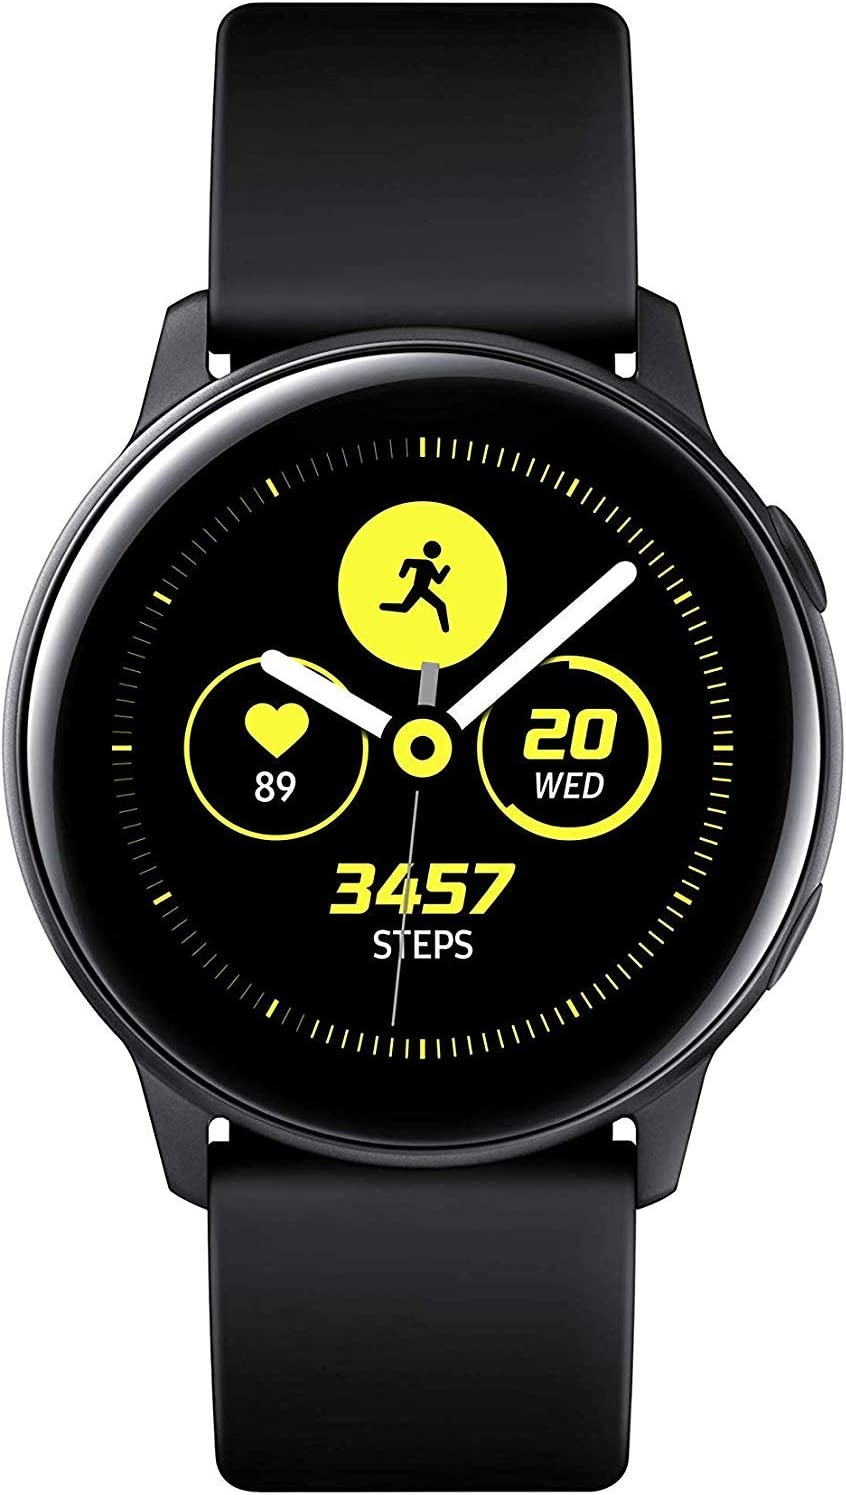 Samsung Galaxy Watch Active Reloj Inteligente Negro SAMOLED 2,79 cm (1.1